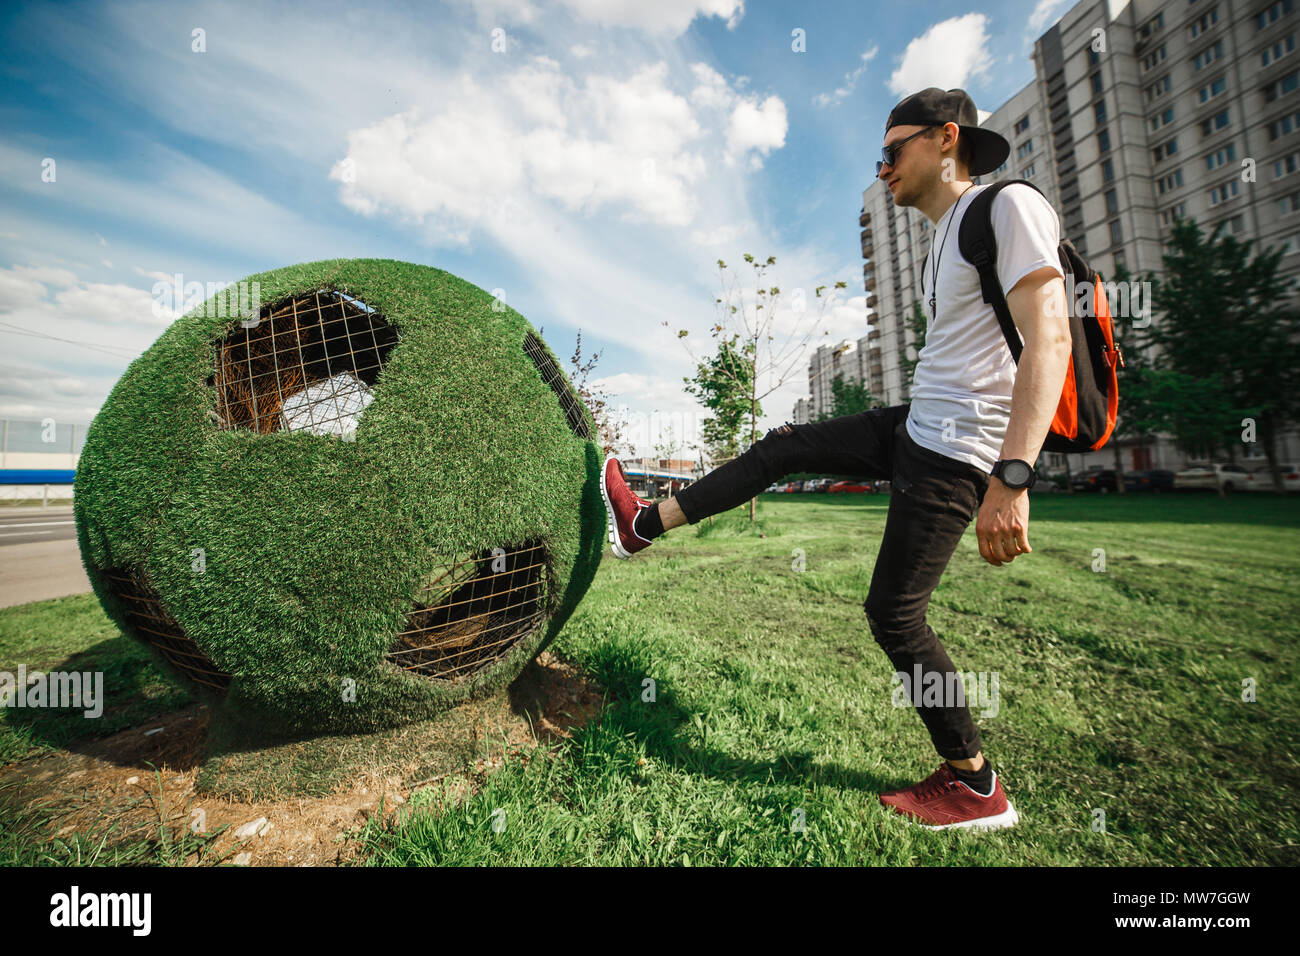 Saint-Petersburg, Russia, 21.05.2018. Stylish handsome man tourist is kicking the ball soccer ball of grass. Russian World cup concept. - Stock Image